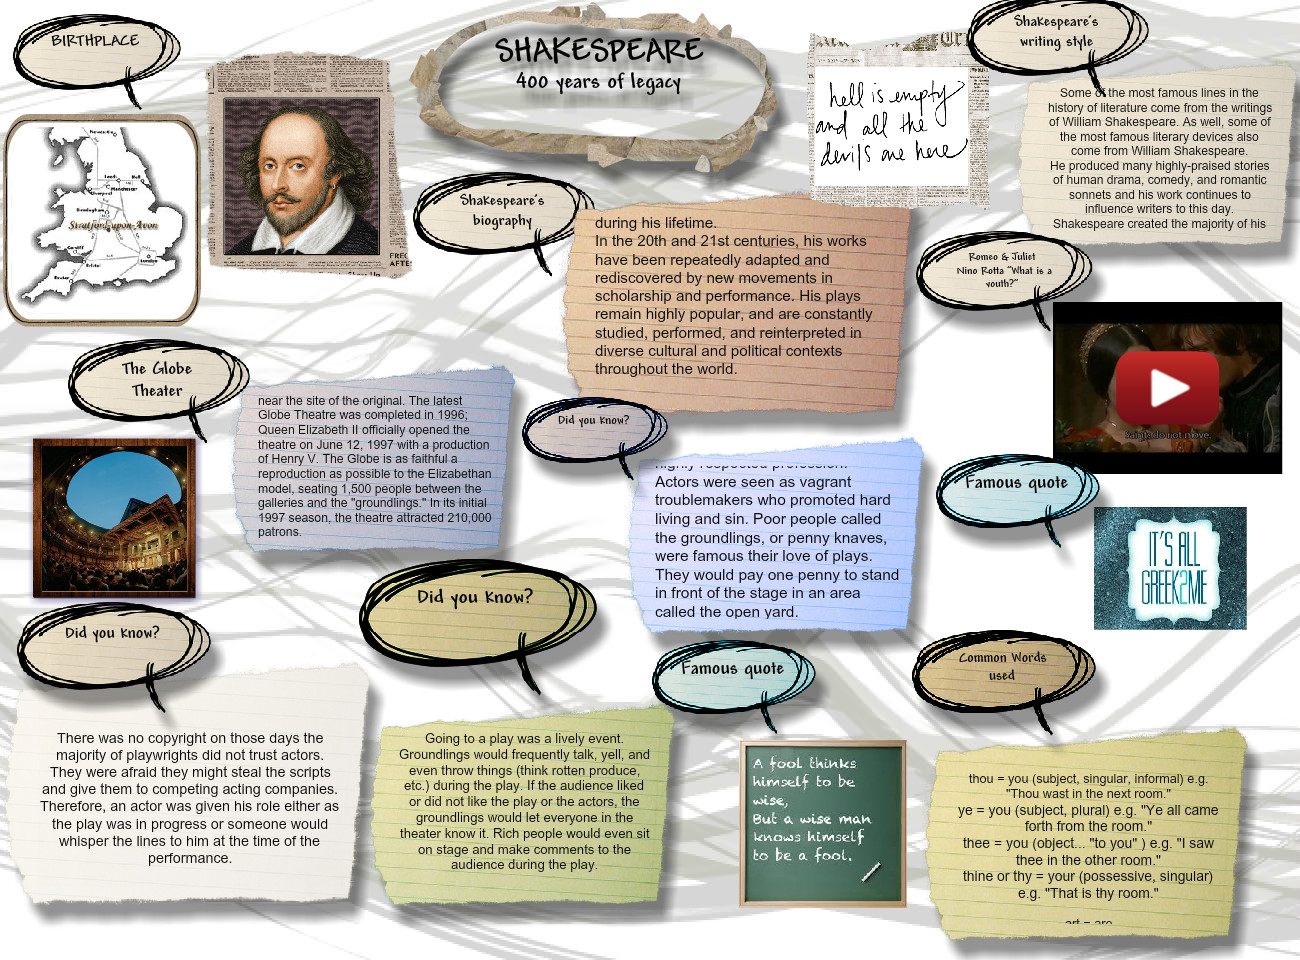 SHAKESPEARE - 400 YEARS OF LEGACY